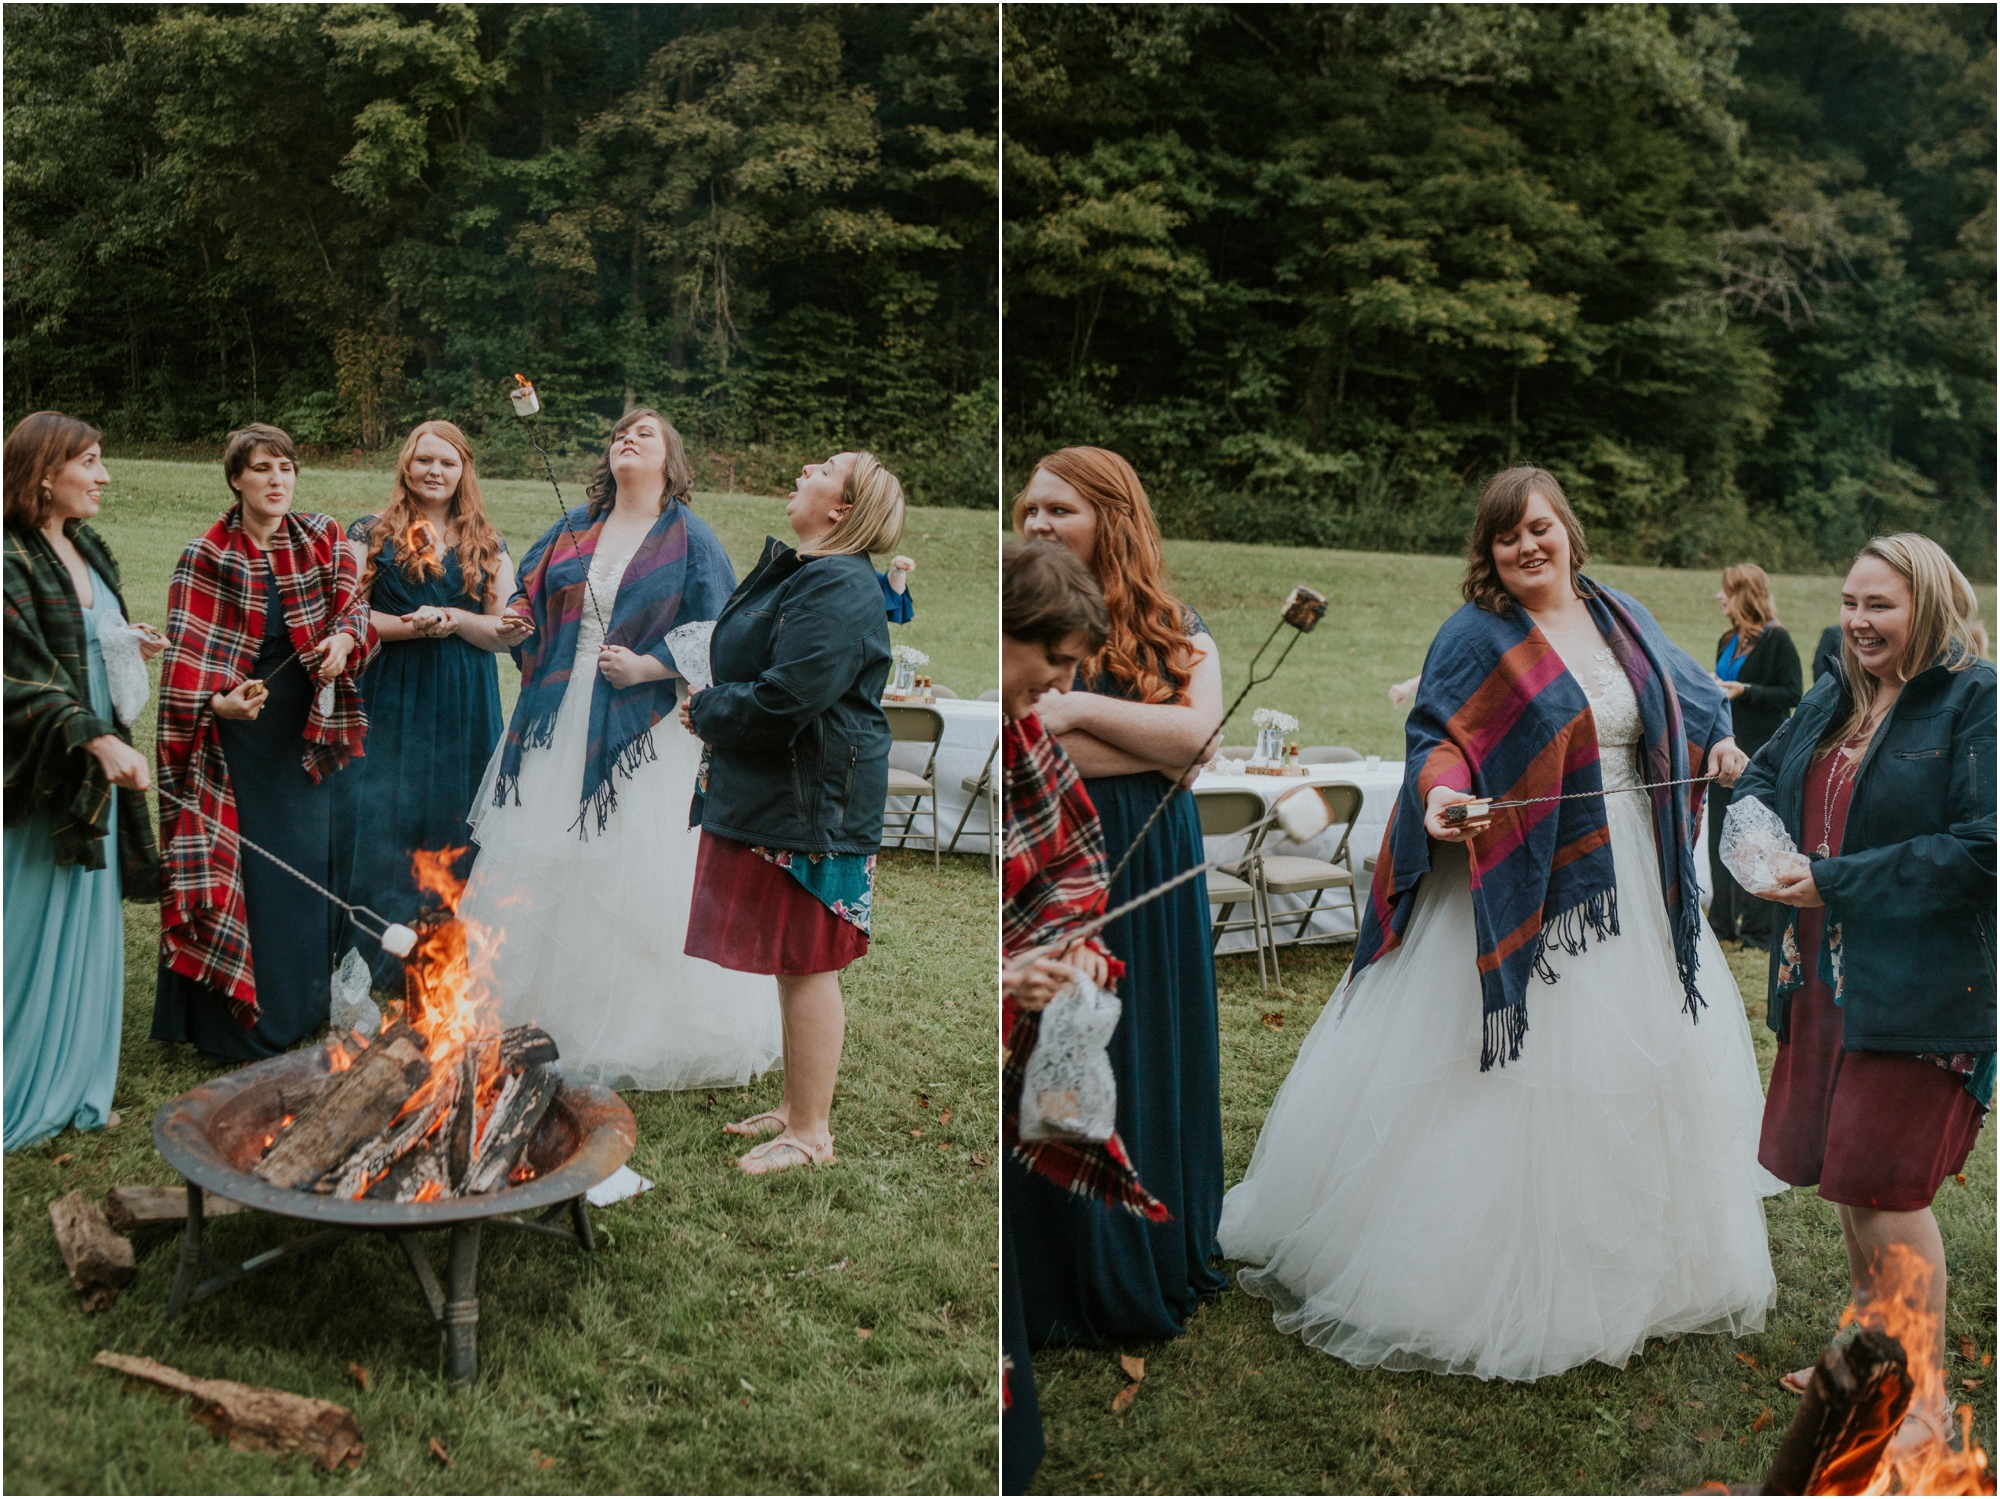 caryville-robbins-middle-tennessee-intimate-cozy-fall-navy-rustic-backyard-wedding_0131.jpg